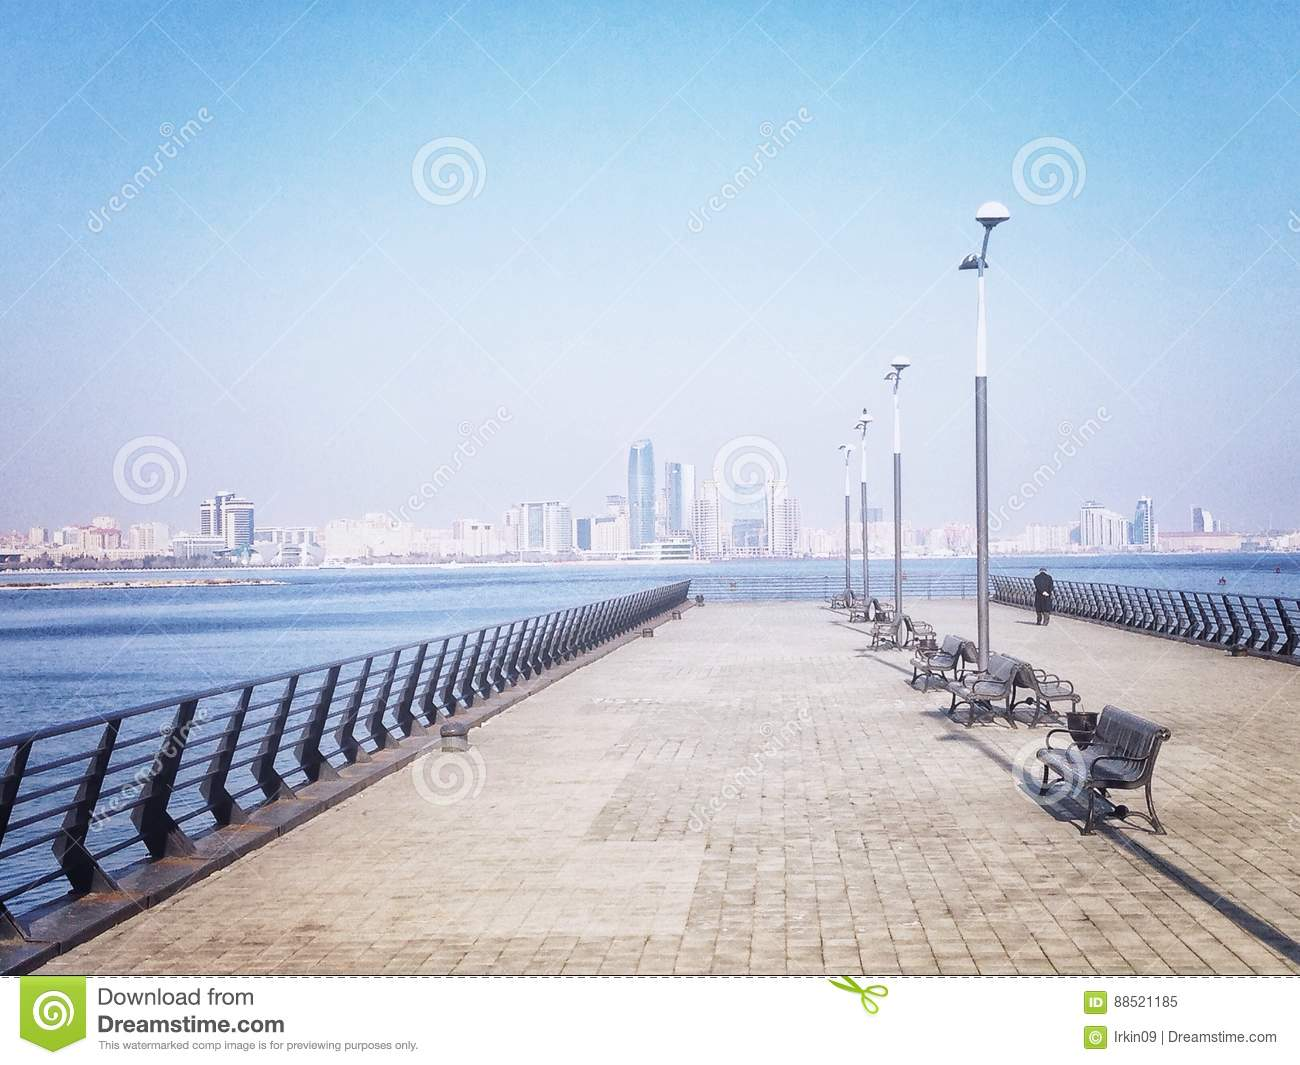 Pier at the Caspian Sea